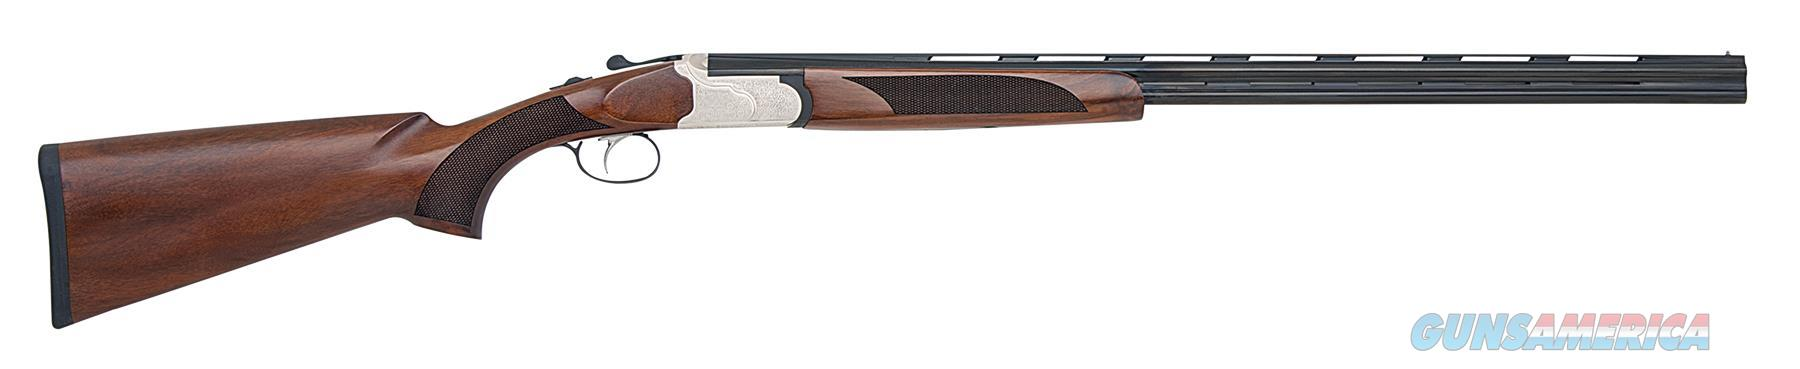 MOSSBERG FIREARMS SILVR RESRVE II 410/26 O/U 75417  Guns > Shotguns > Mossberg Shotguns > Over/Under